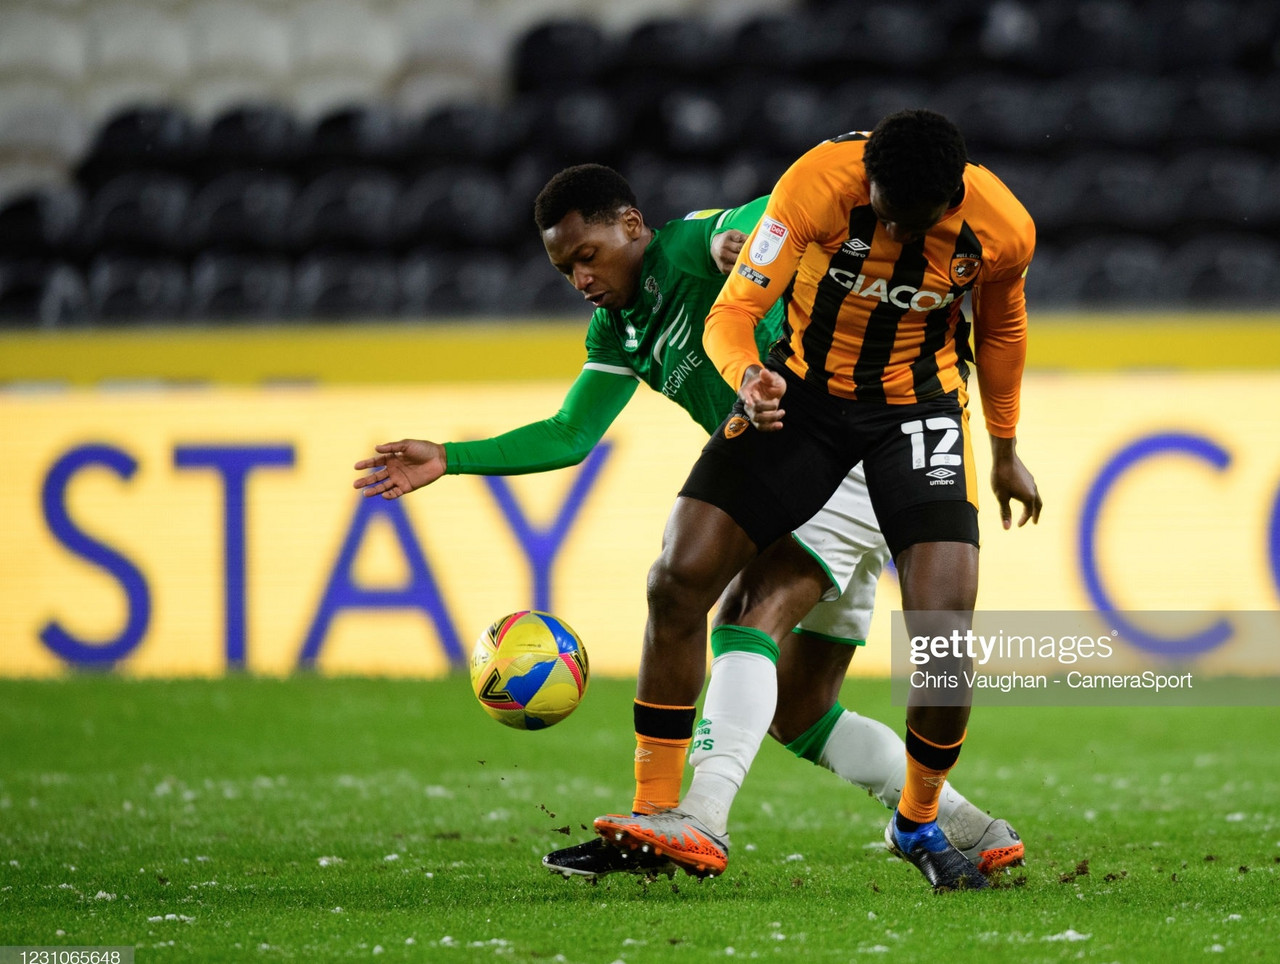 Hull City 0-0 Lincoln City: Imps frustrate the Tigers at the KCOM